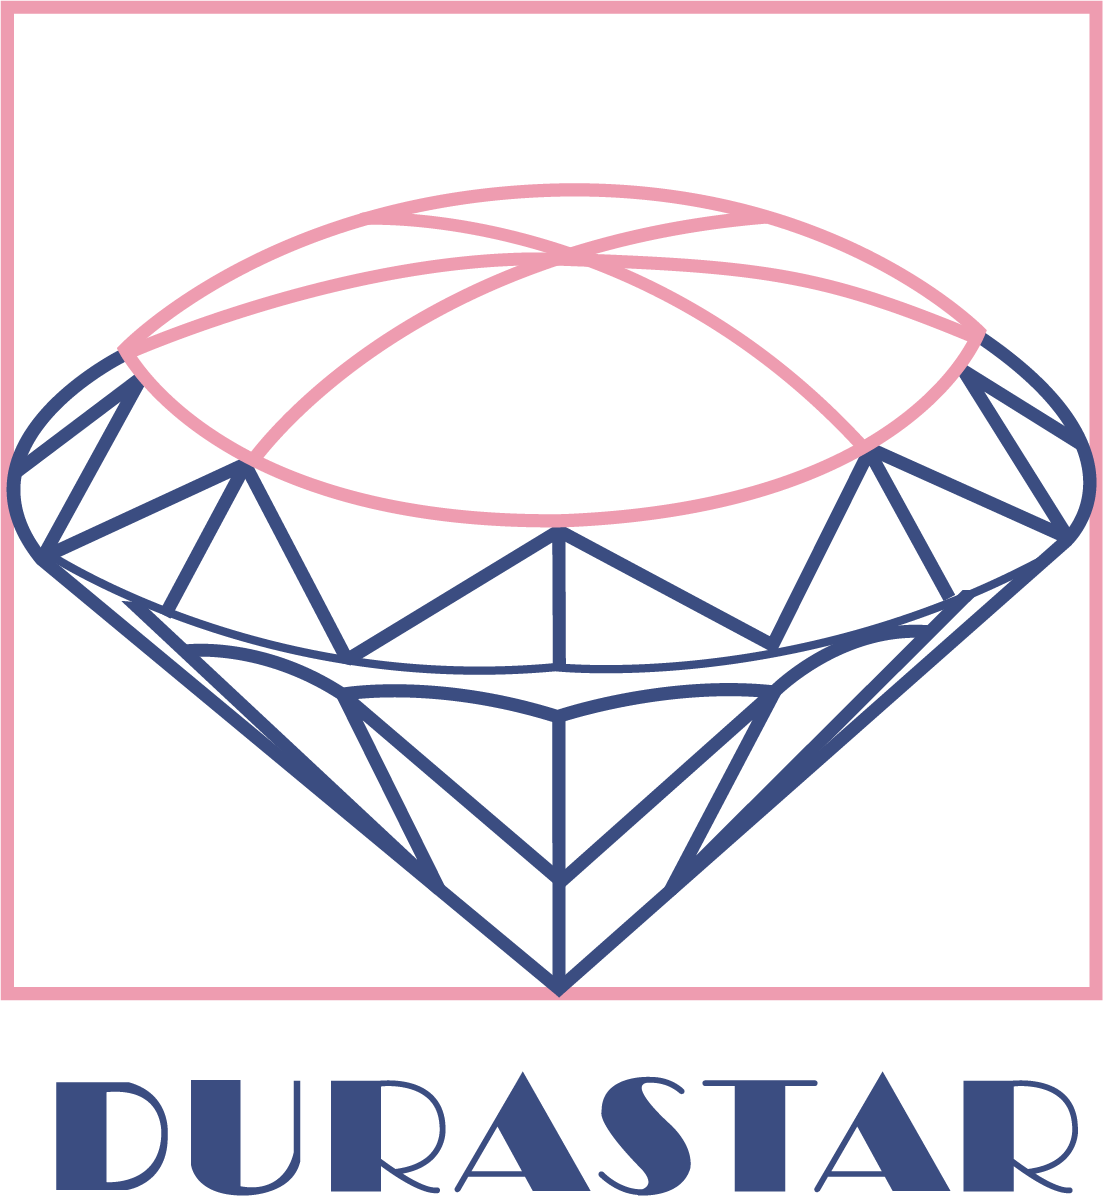 DURABLE STAR INTERNATIONAL CO. LTD.